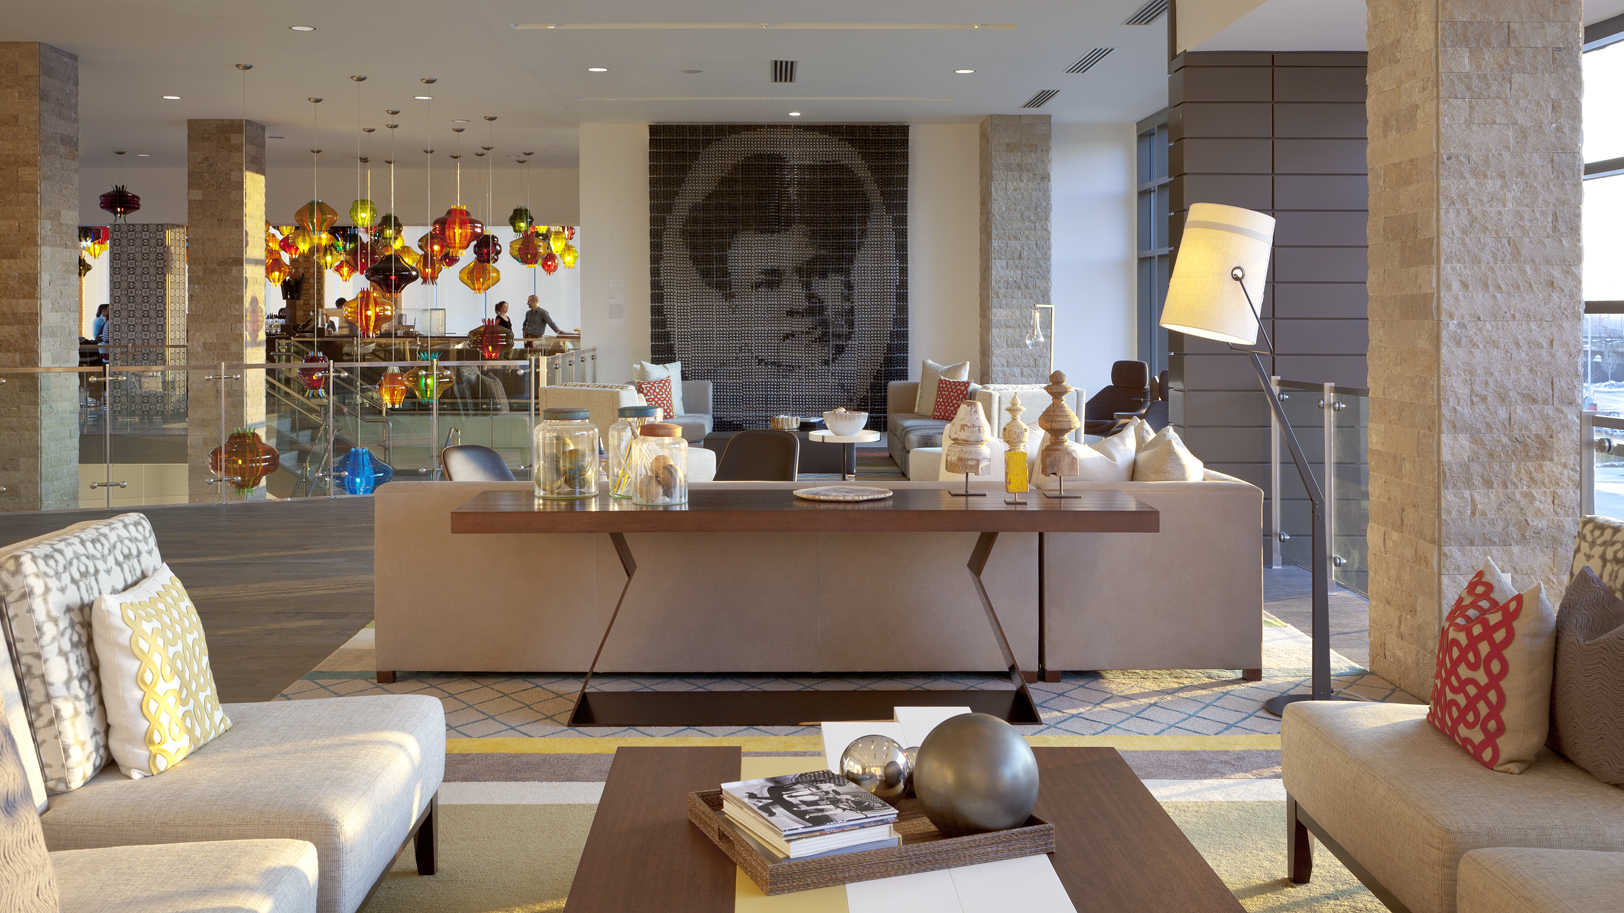 The Alexander Hotel lobby featuring art